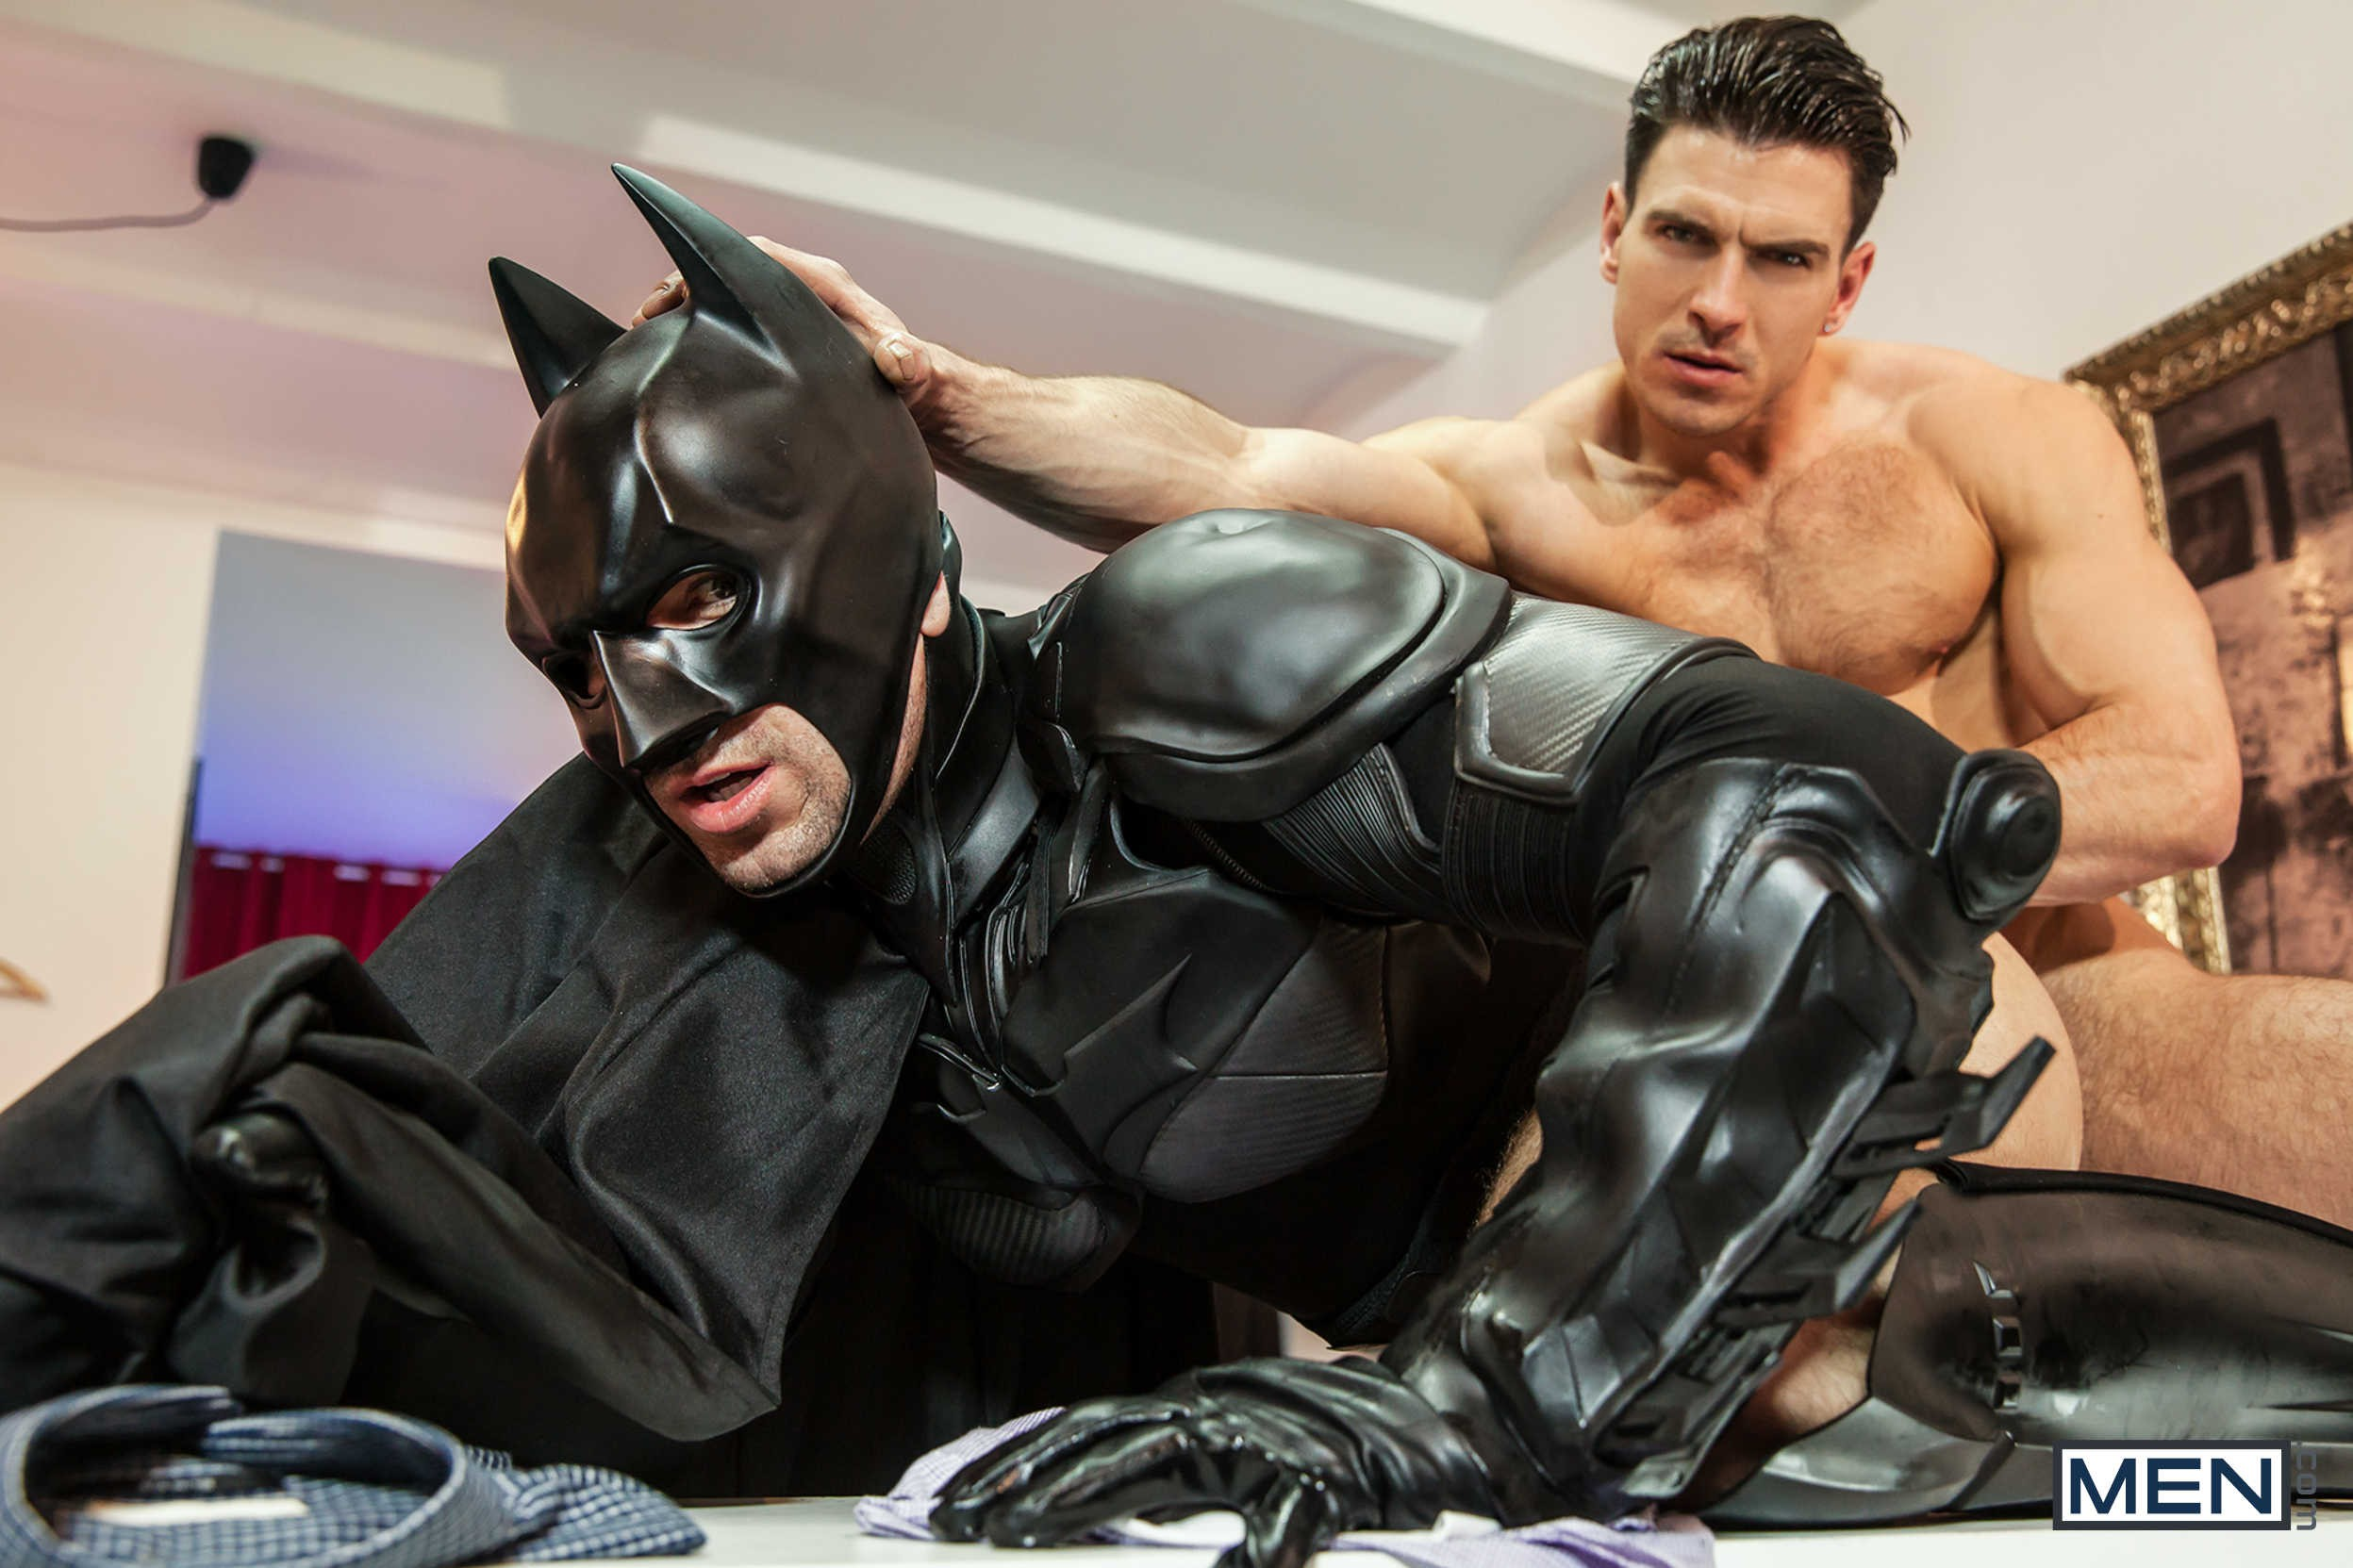 batman superman gay porno mama velika guza seks videa